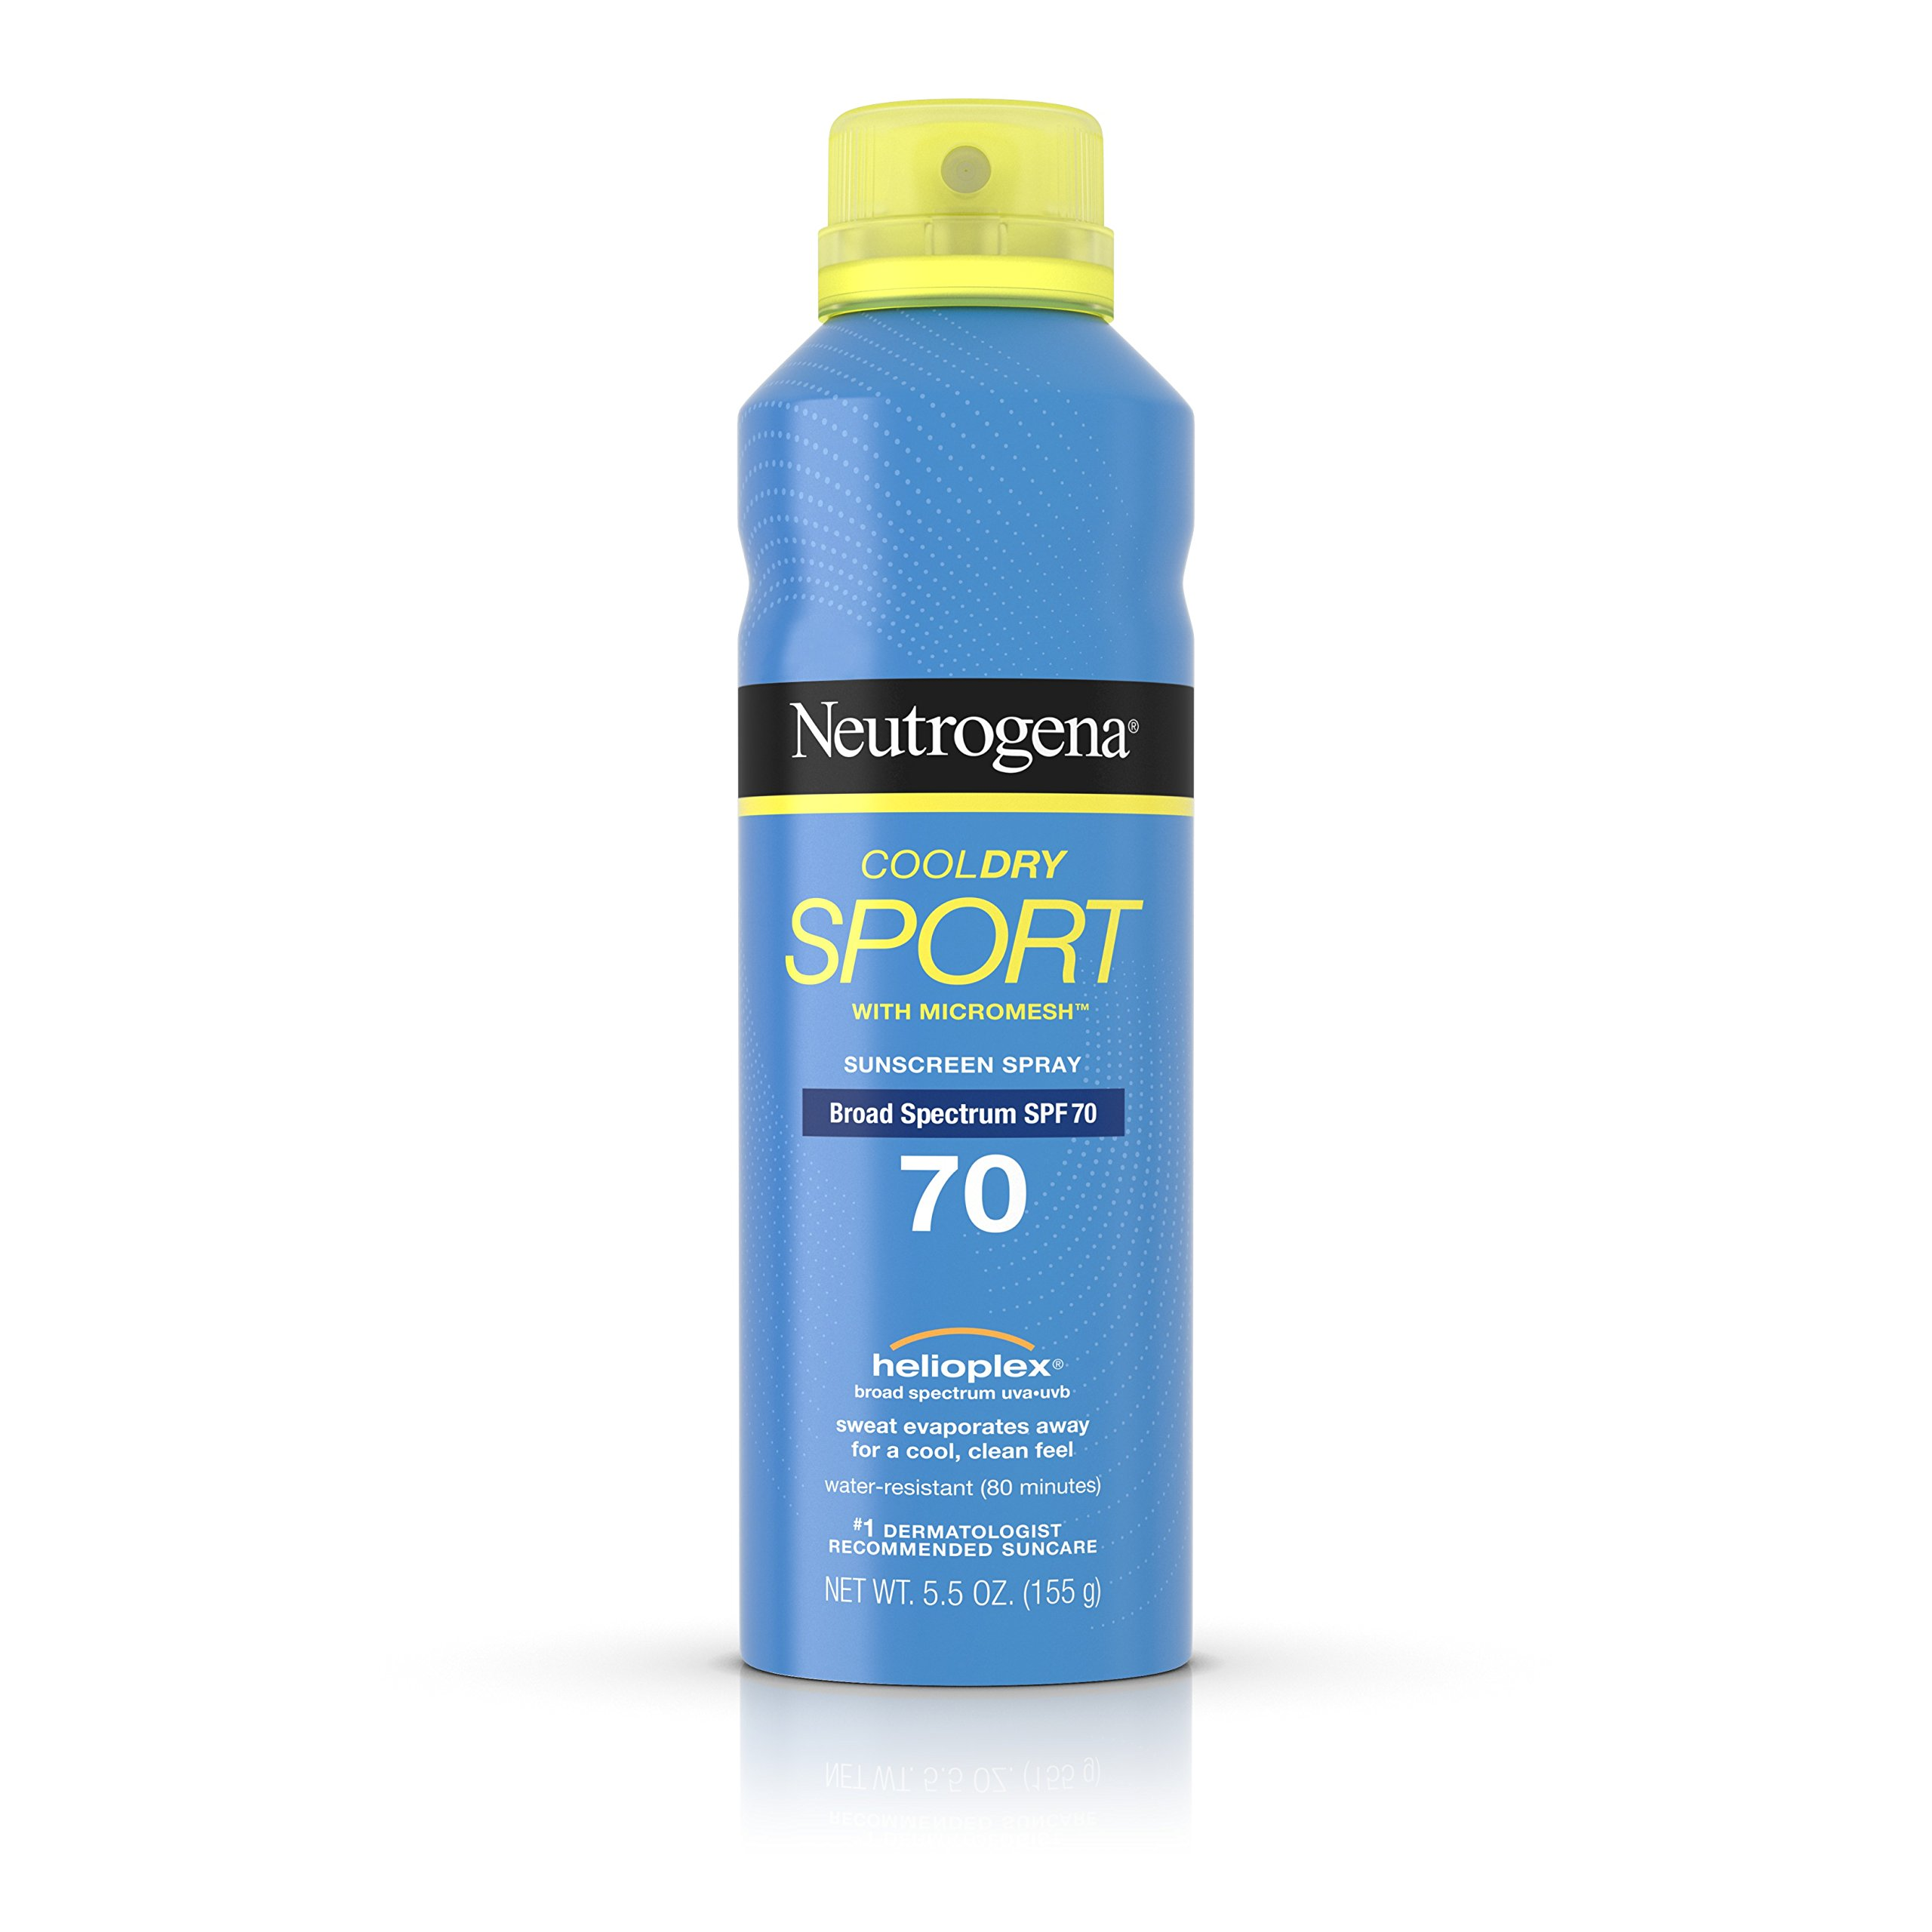 Neutrogena Cooldry Sport Sunscreen Spray Broad Spectrum SPF 70, 5.5 Oz